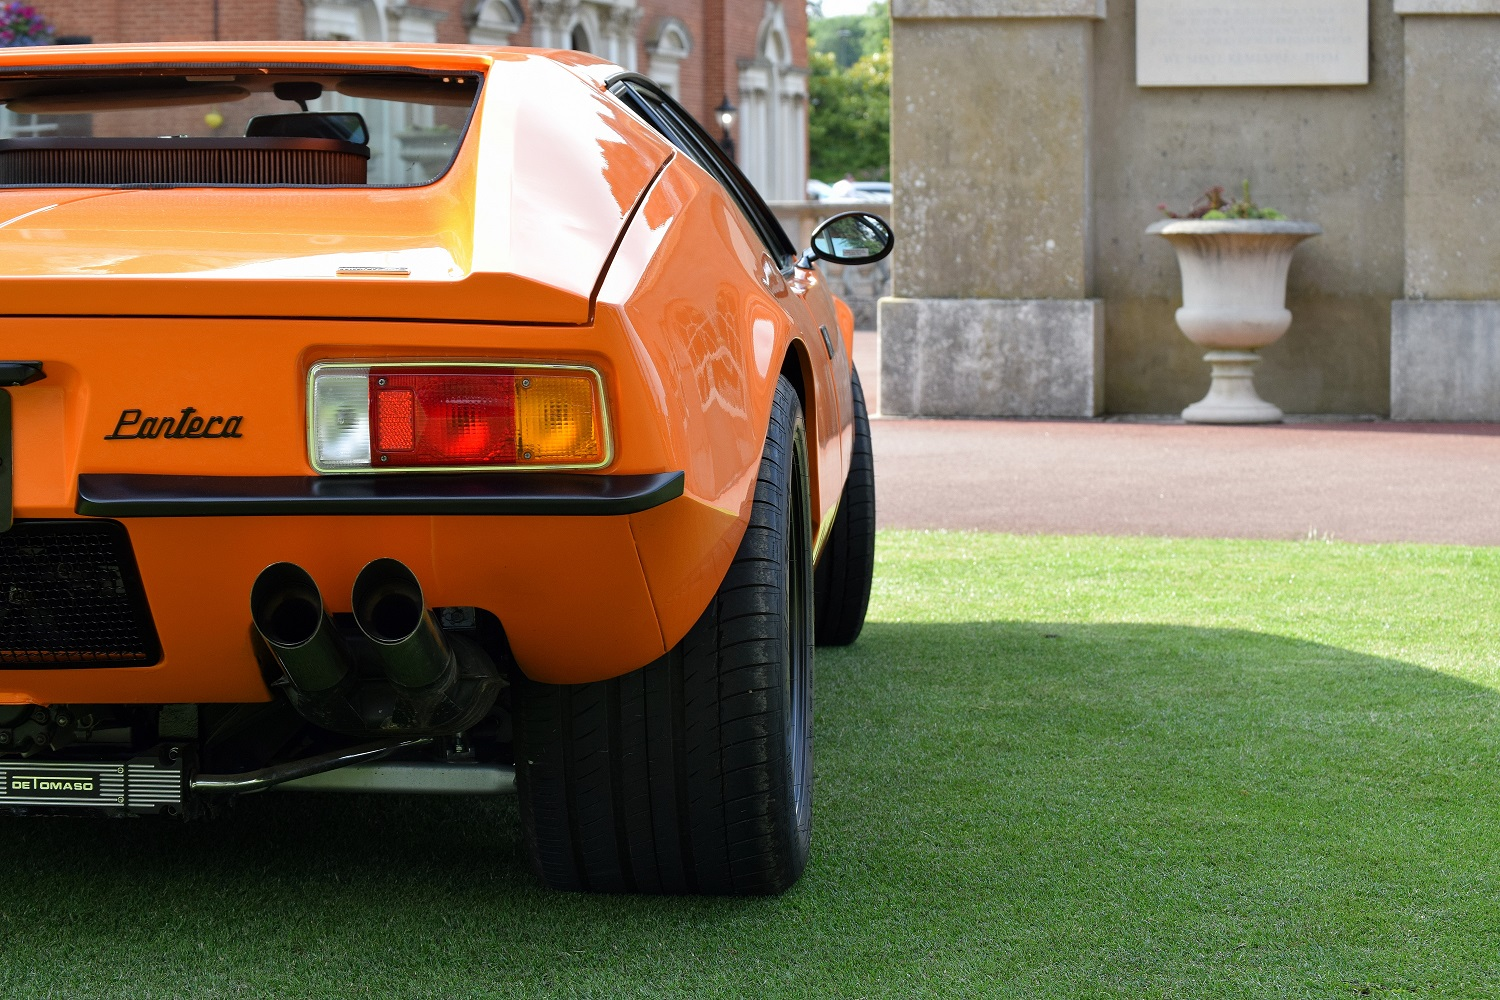 Artistic rear view of the Pantera